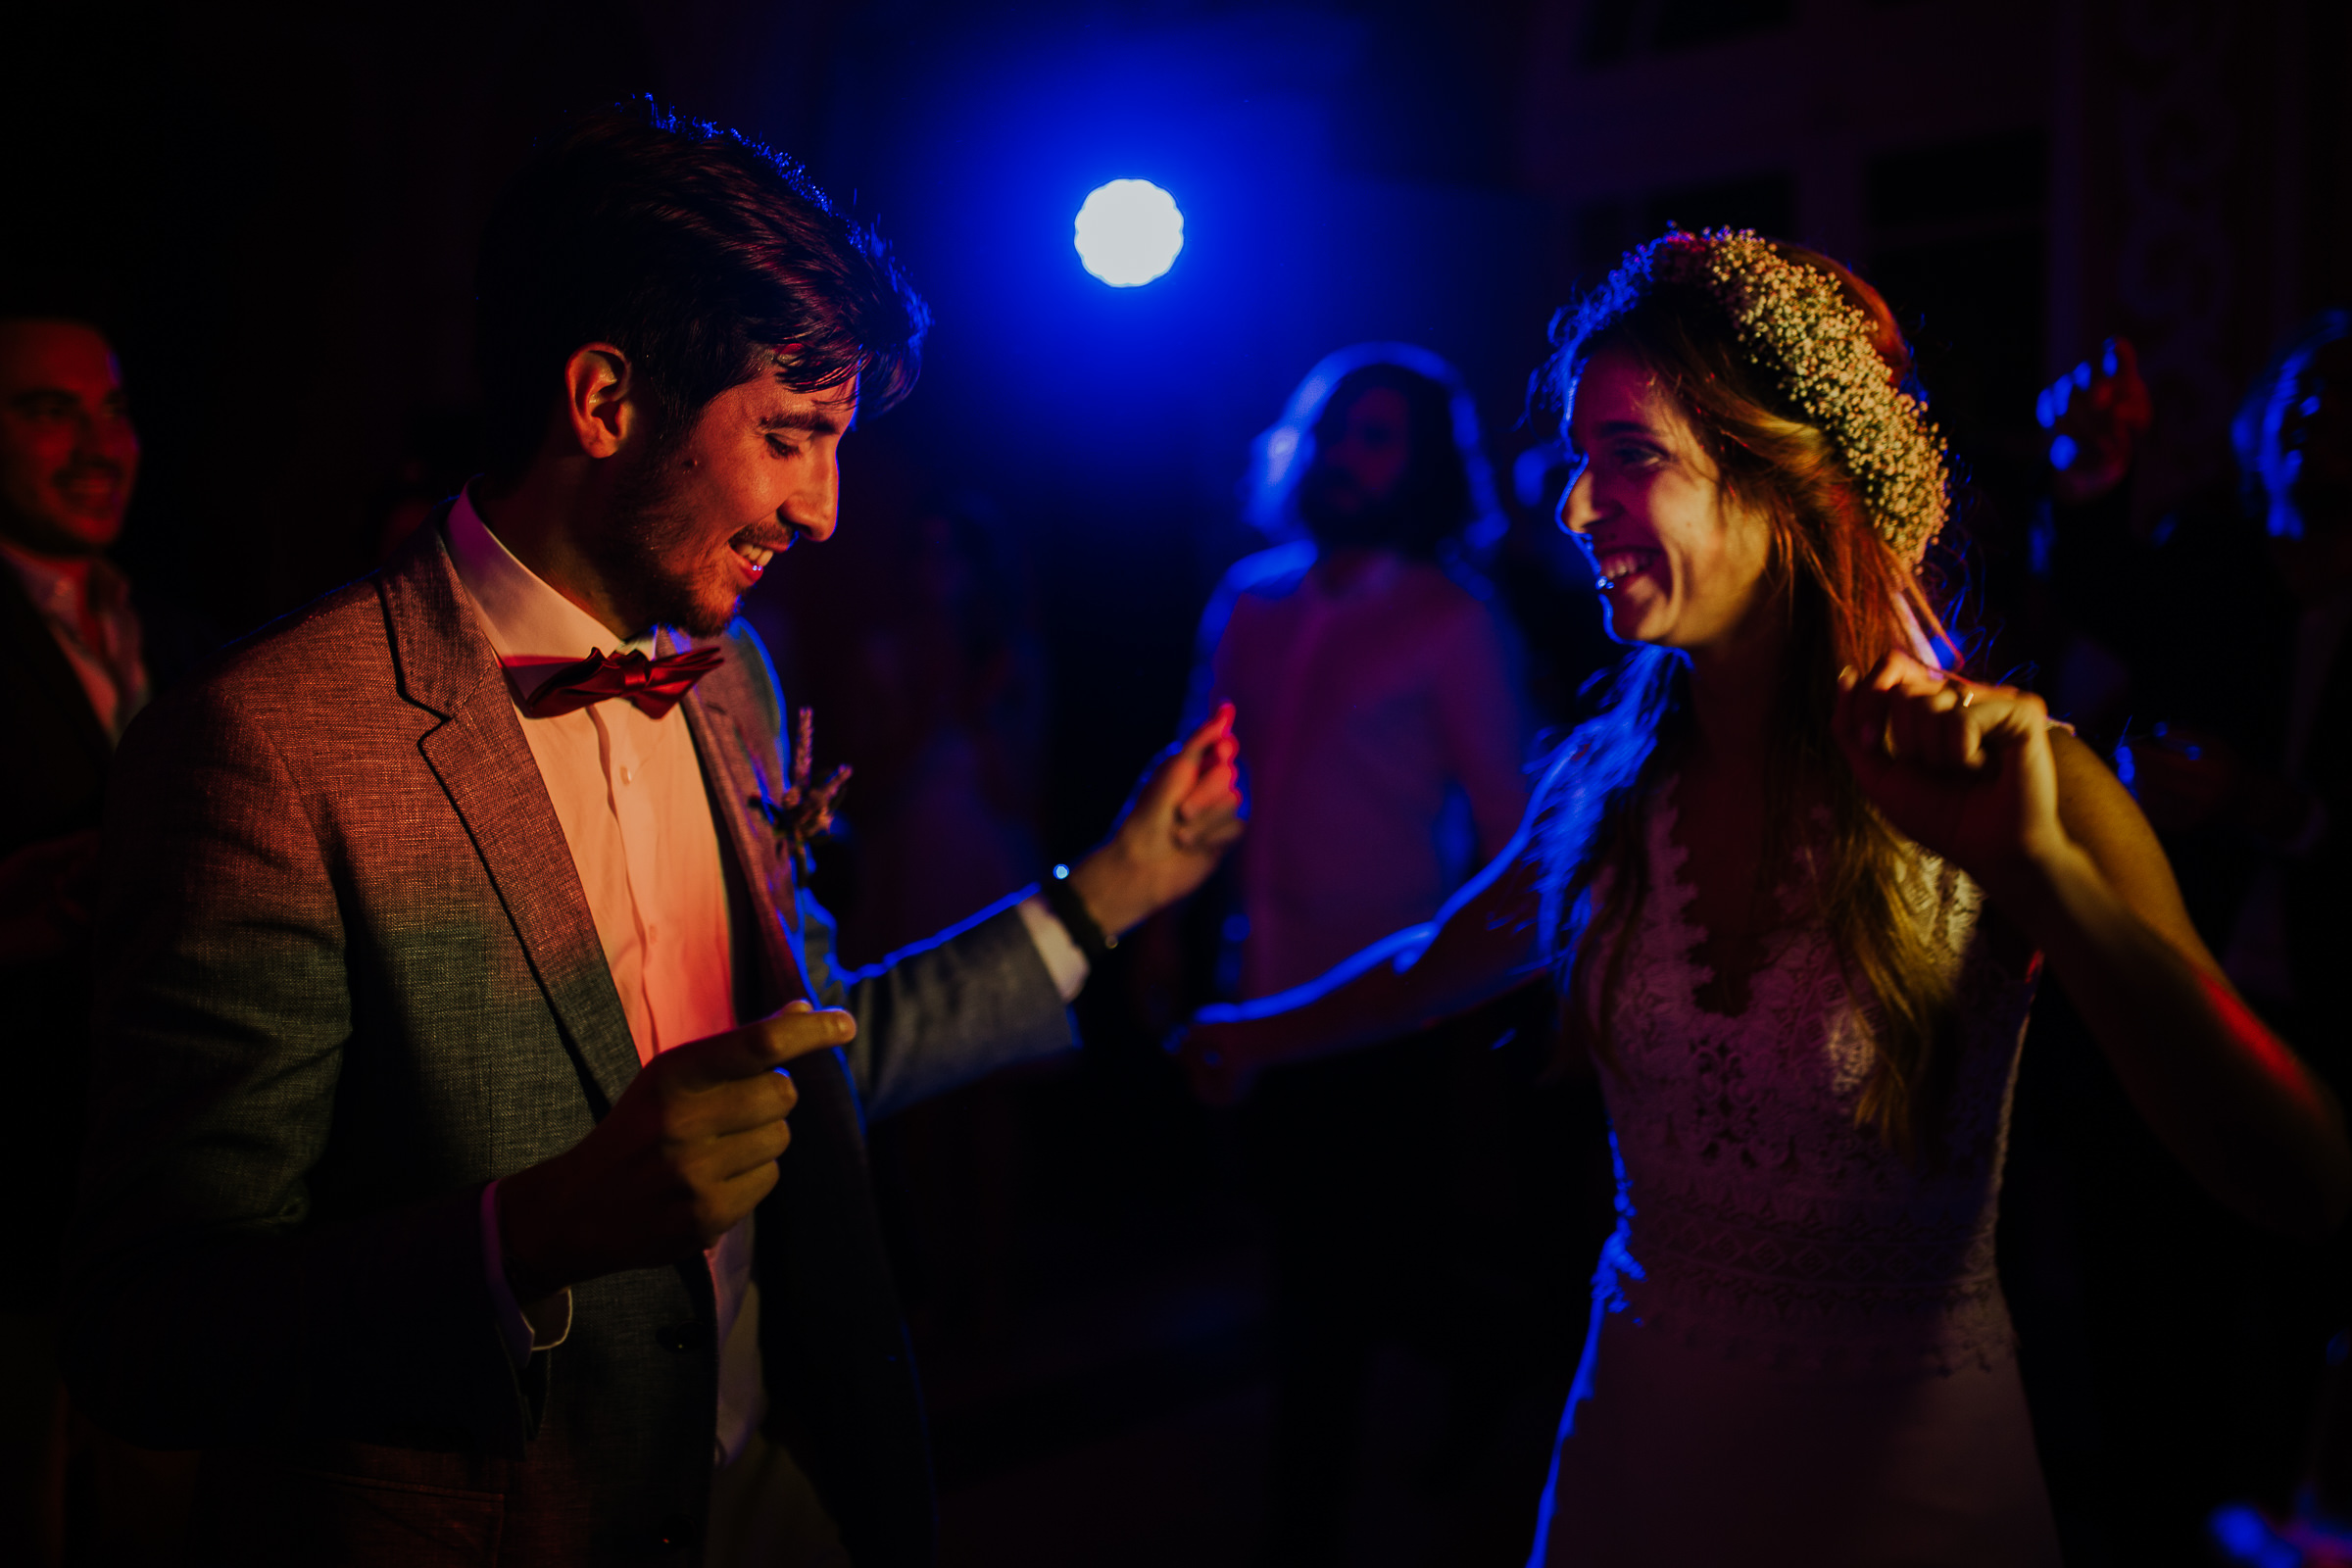 Bride and groom dancing on the wedding party at night